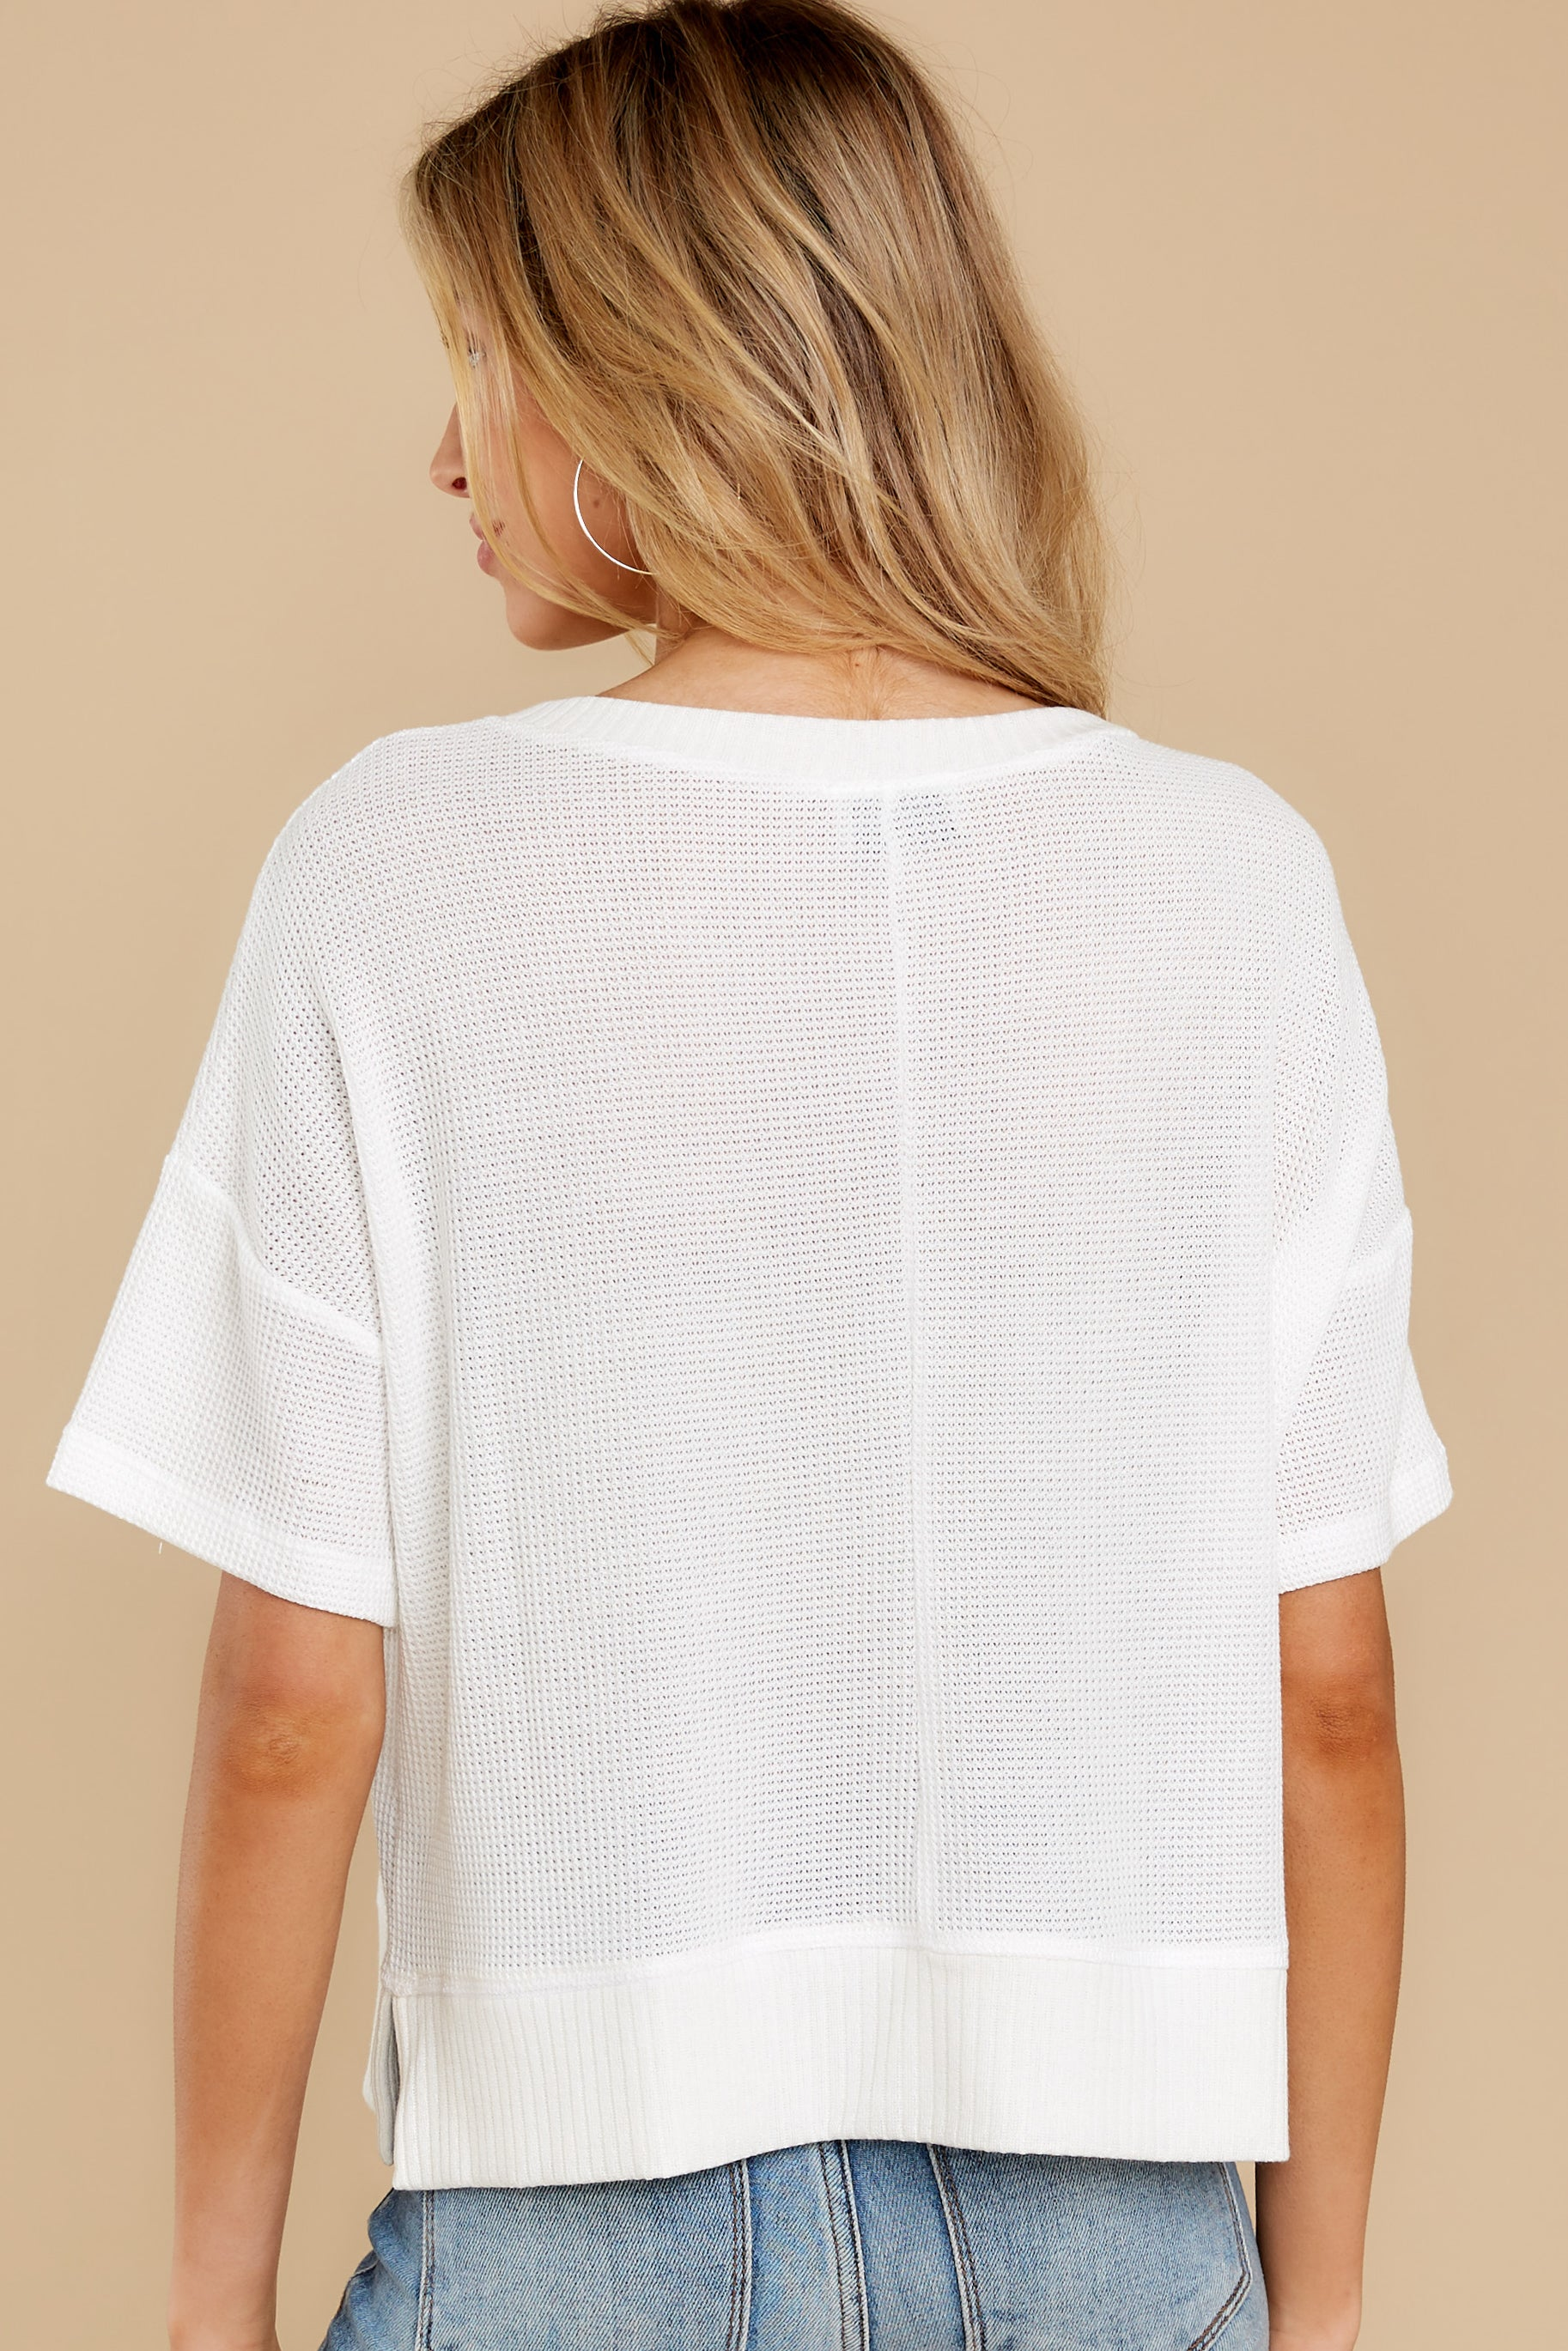 8 It's All Casual White Top at reddress.com